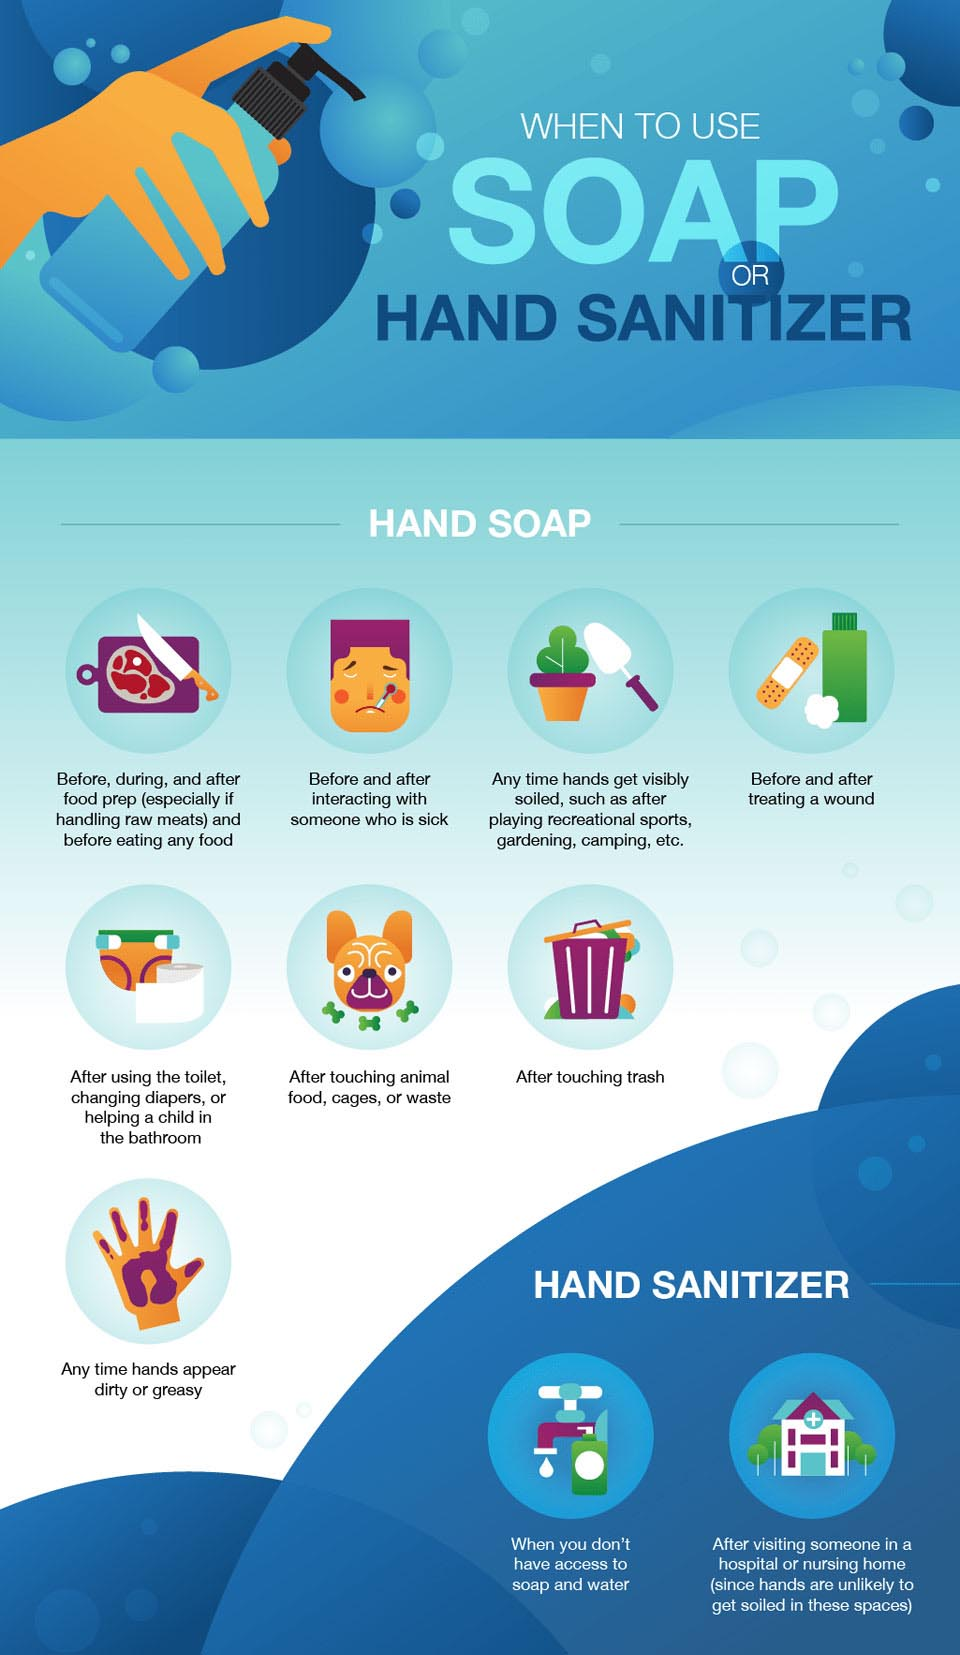 Hand Sanitiser vs Soap - When to Use